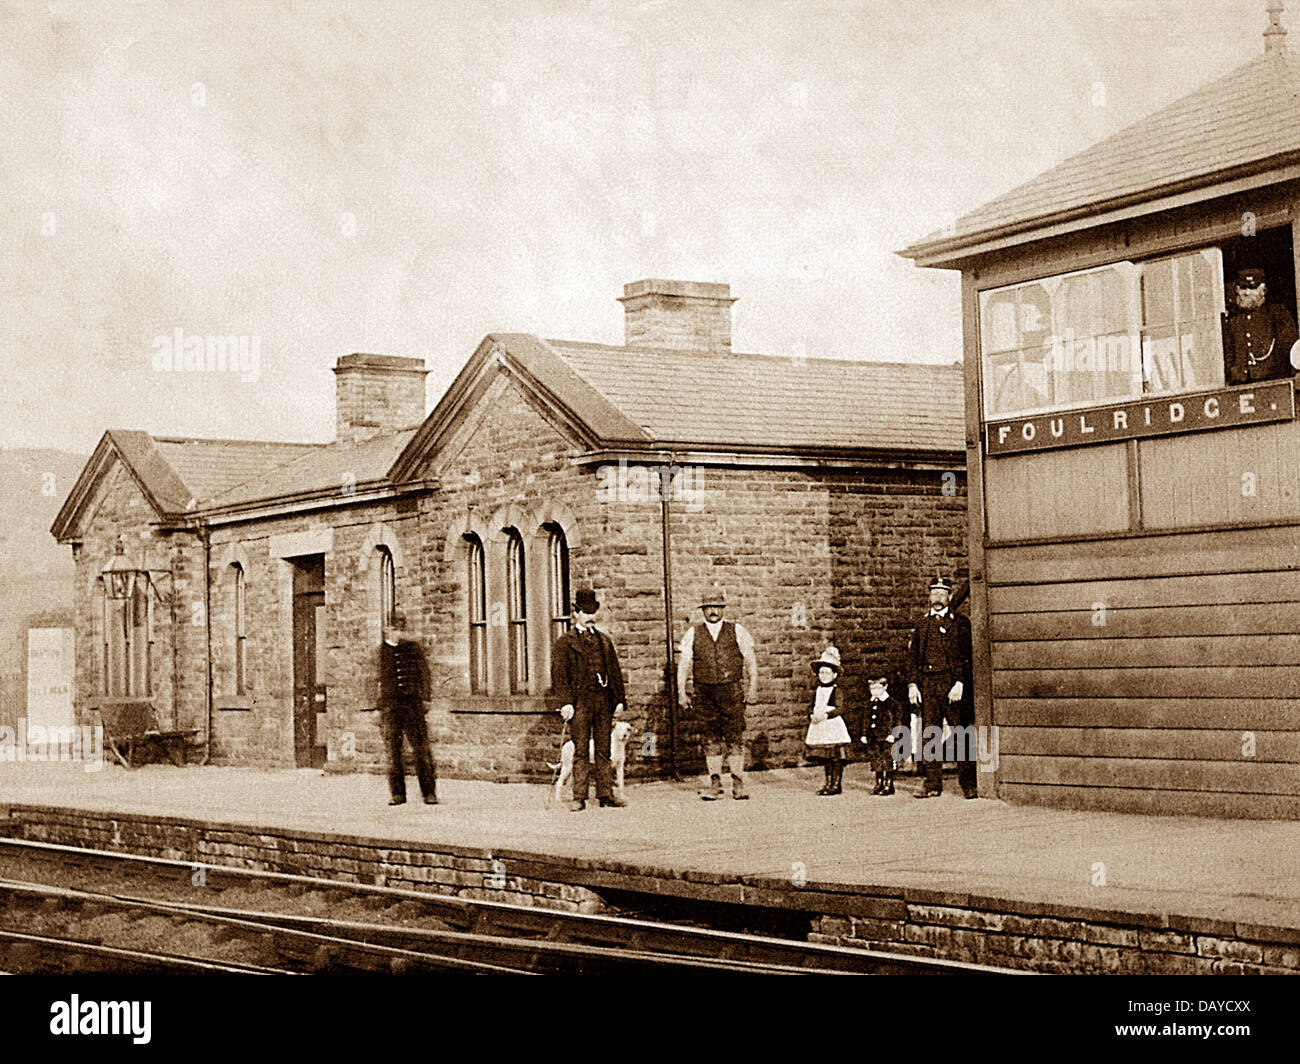 Foulridge Railway Station and Signal Box early 1900s - Stock Image